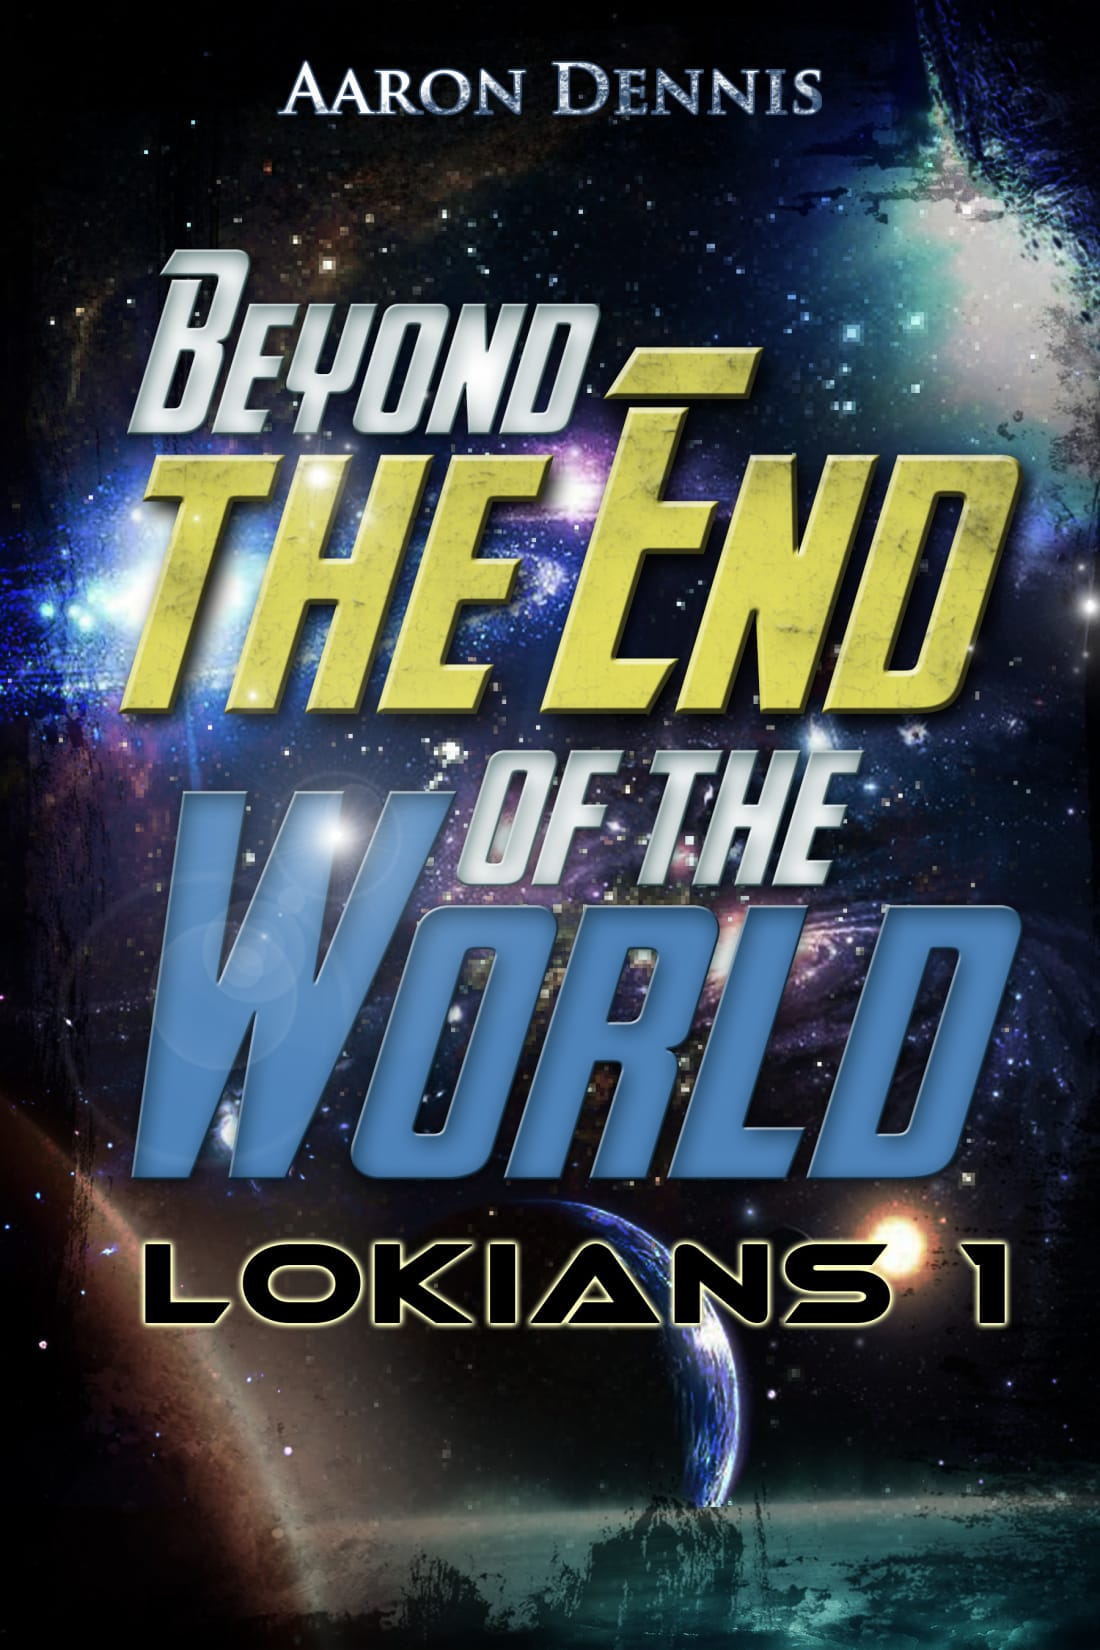 Part 7 of Beyond the End of the World, Lokians 1